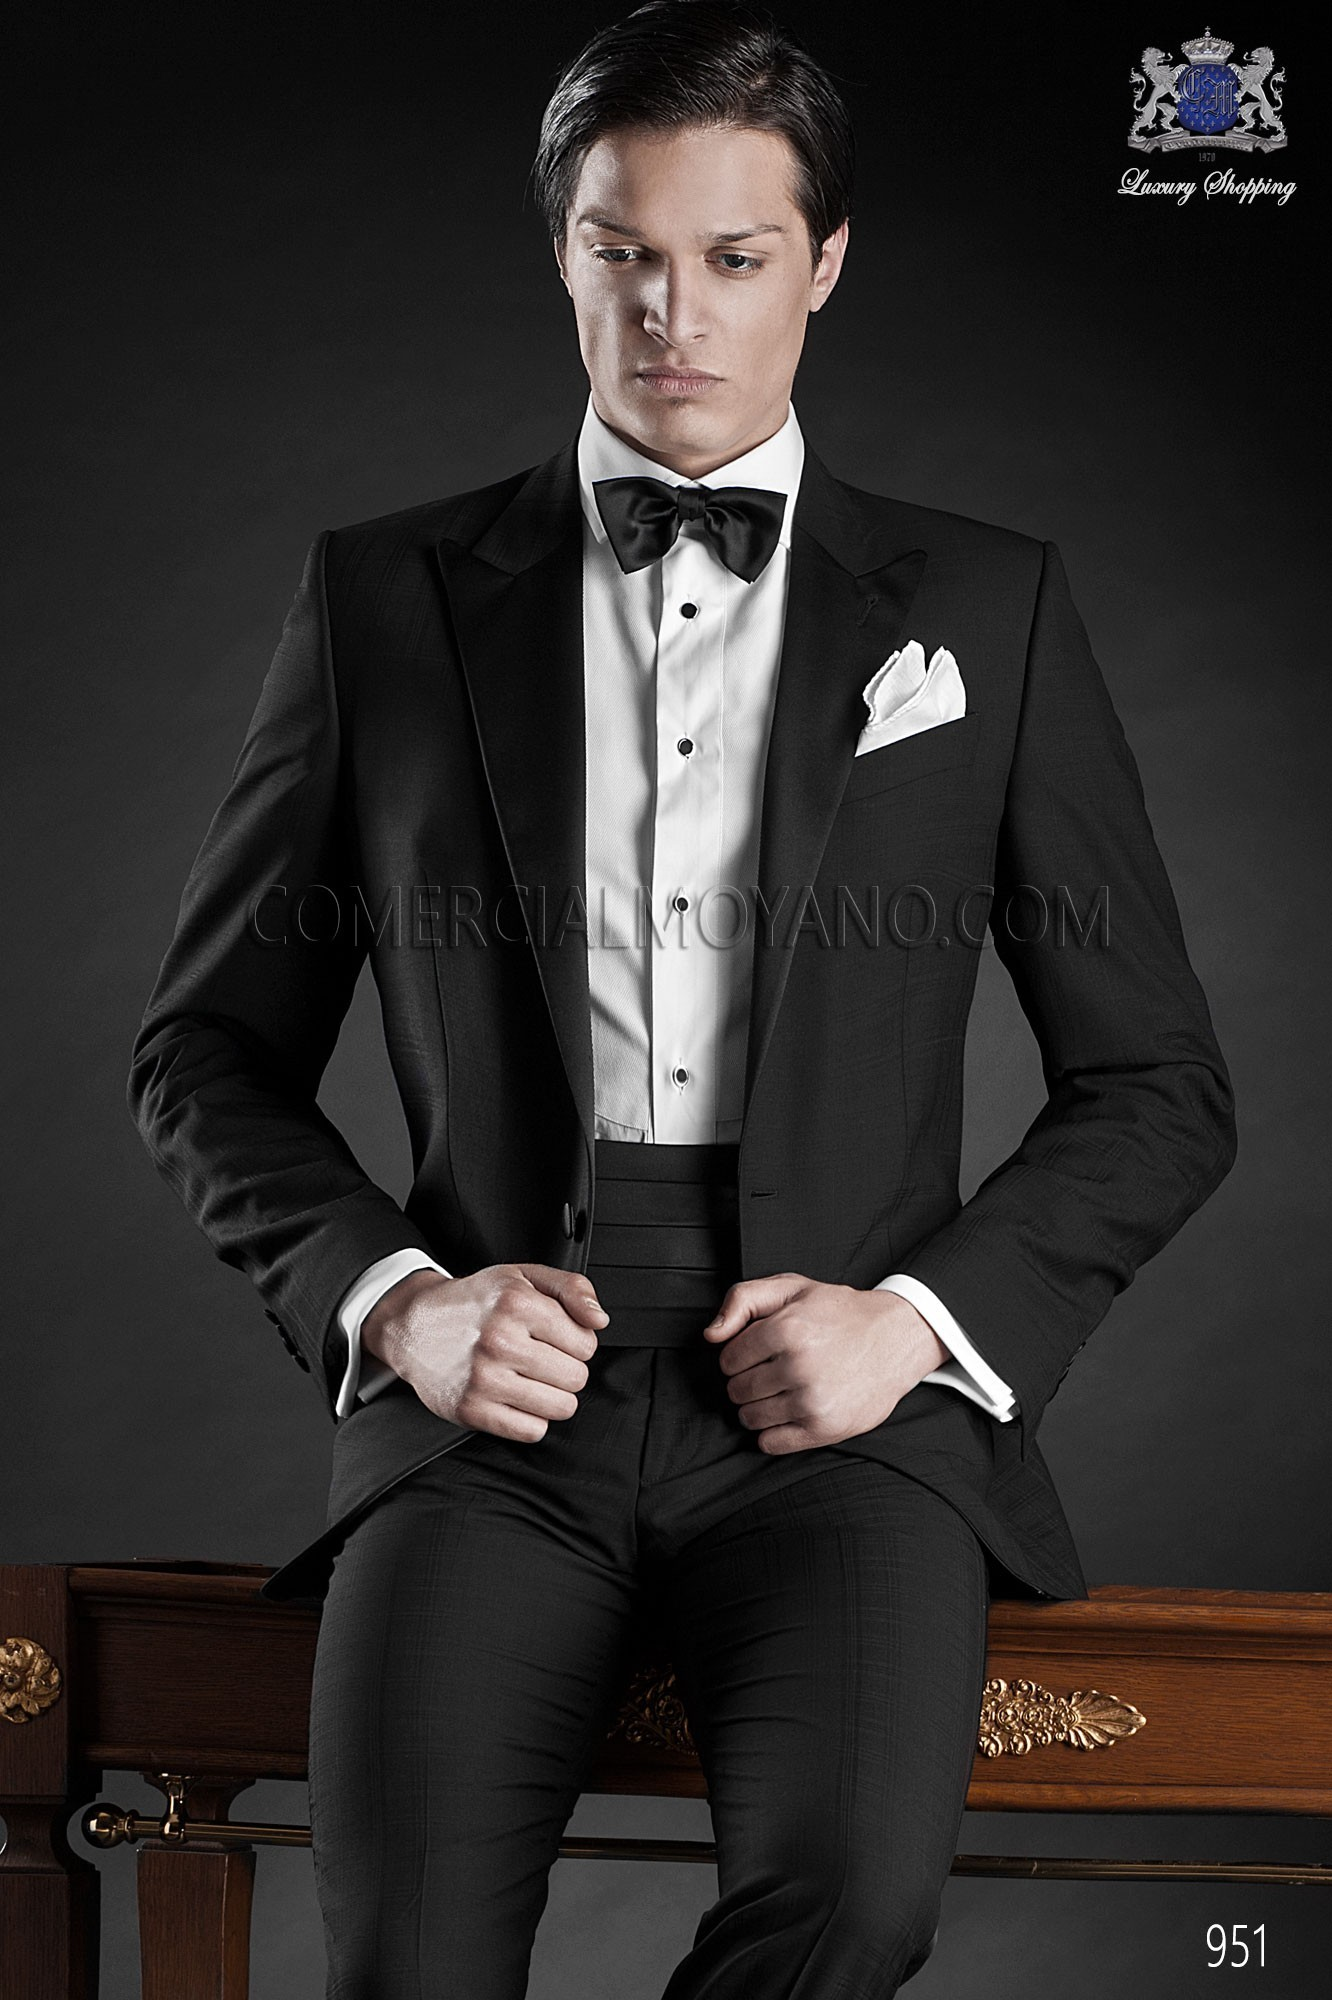 Black Tie black tie men wedding suit, model: 951 Ottavio Nuccio ...